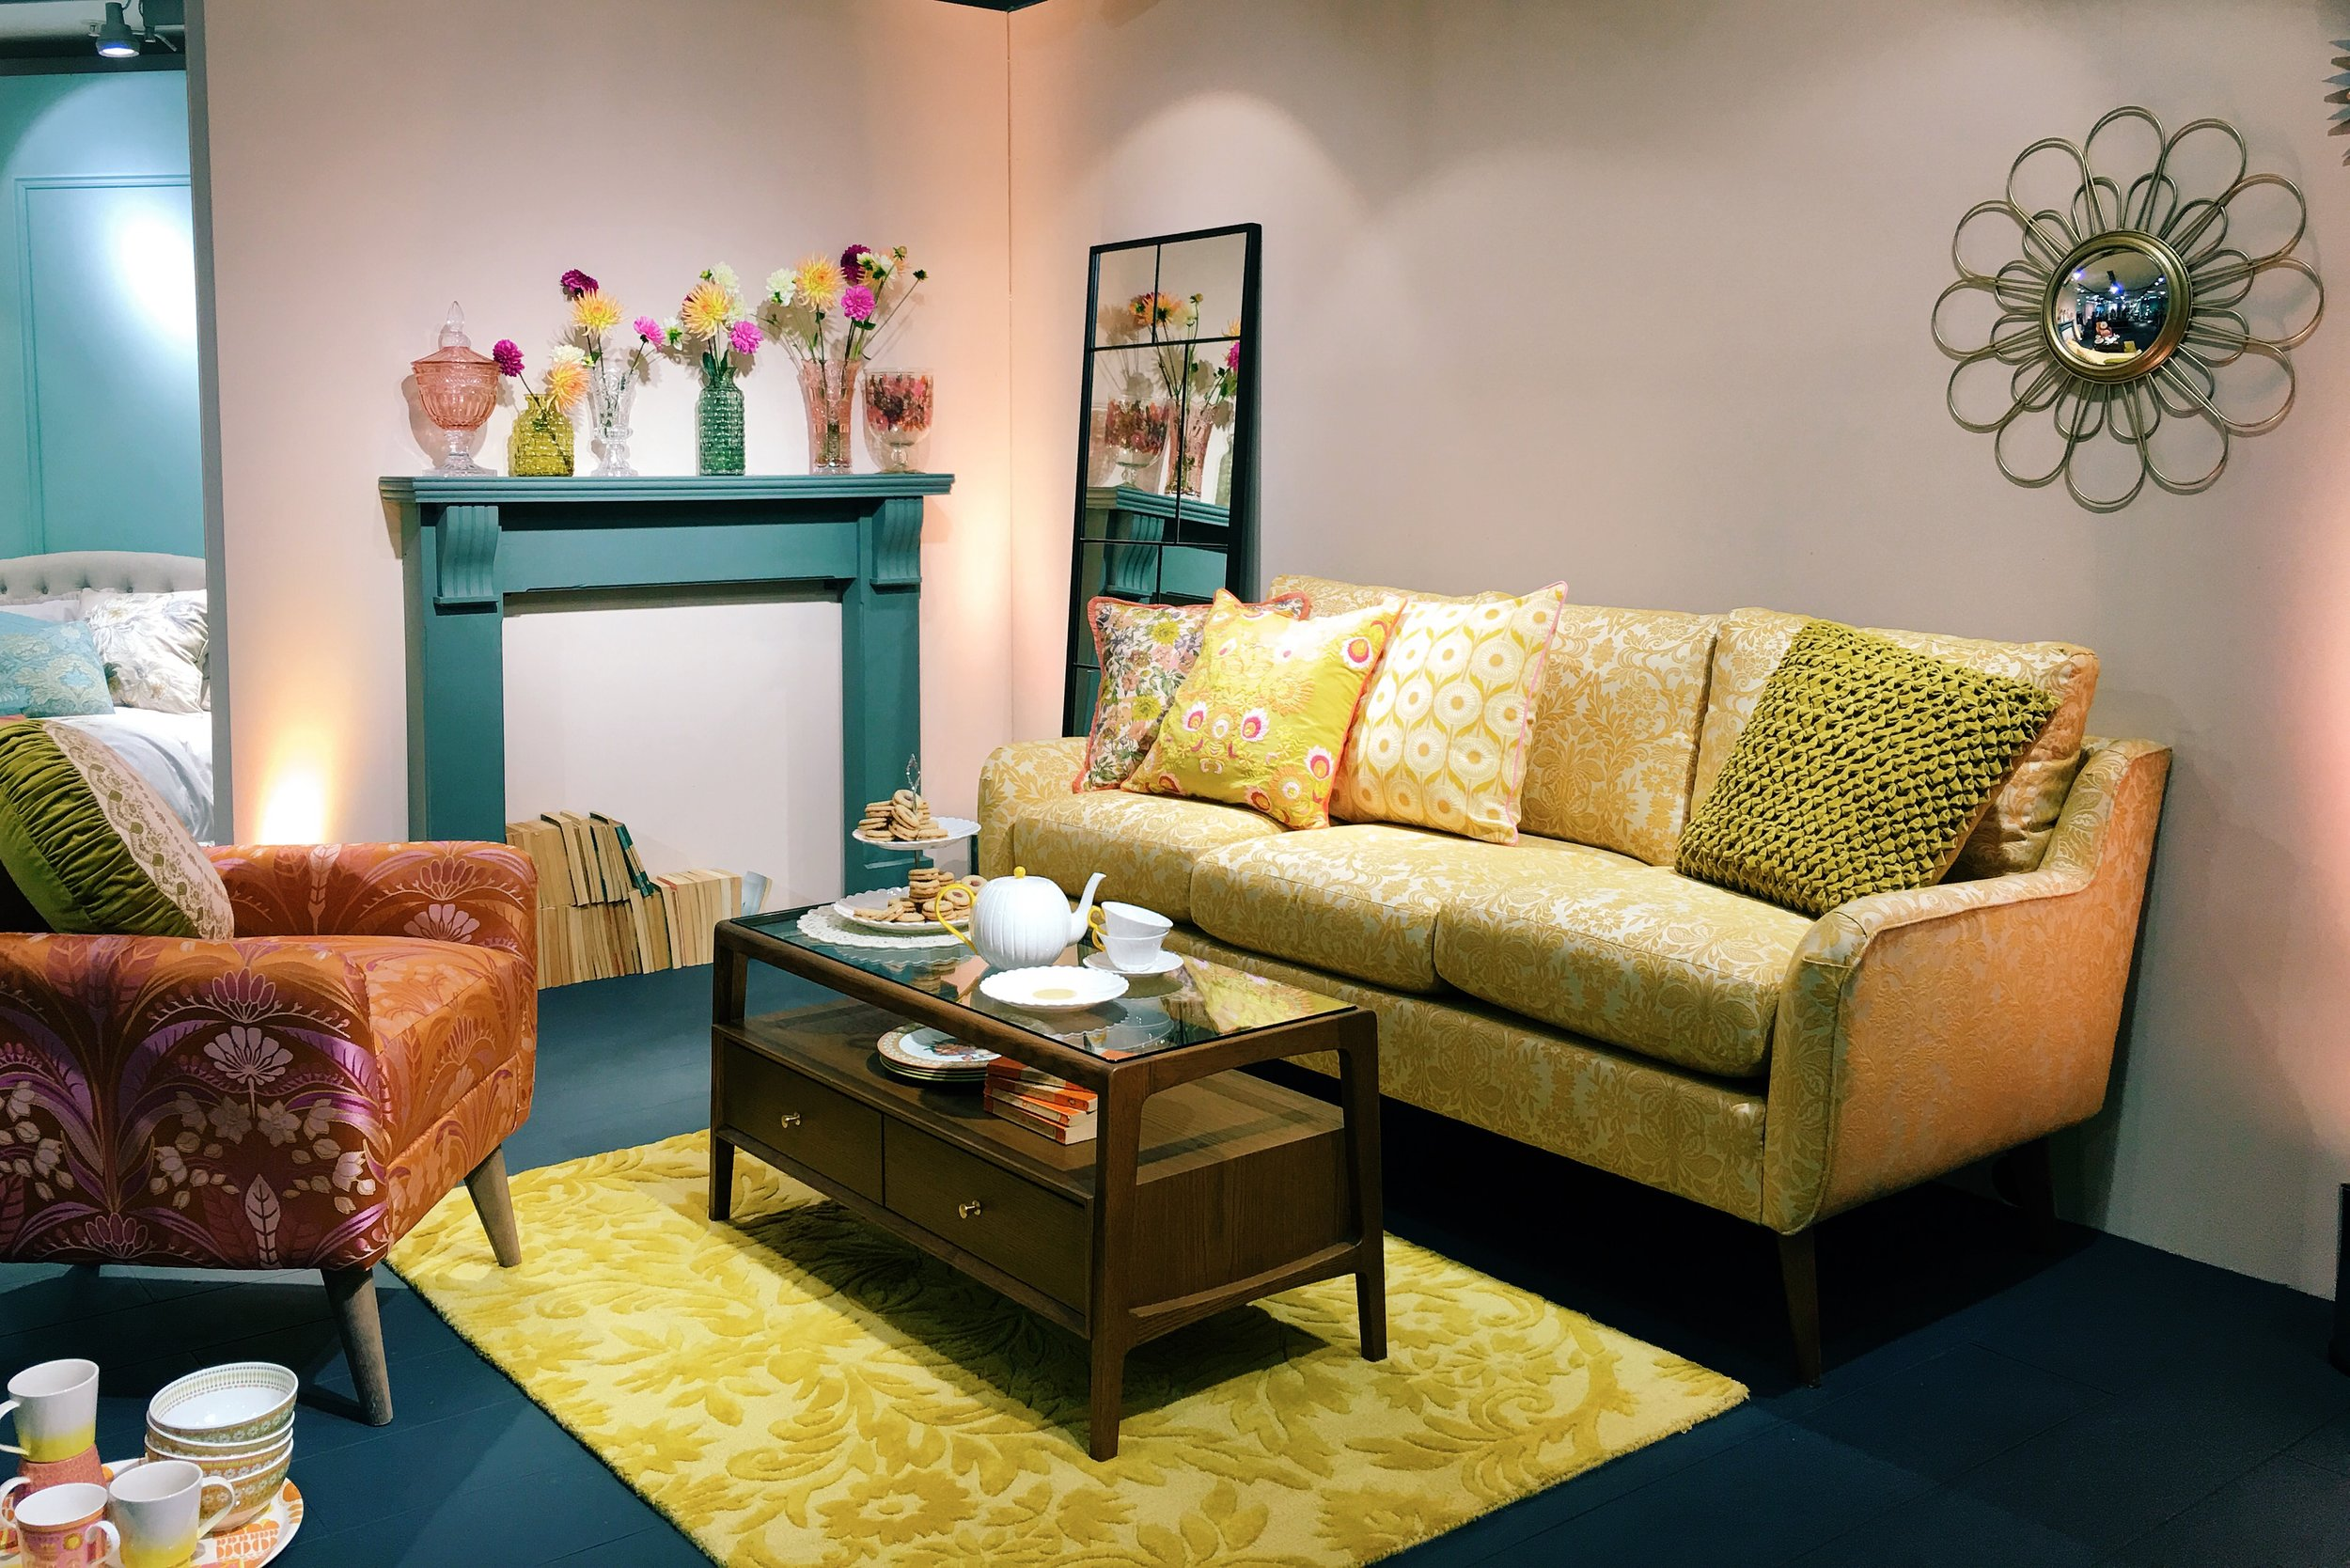 The 70's inspired 'Marigold' collection by M&S. Medium sofa in Meroni Medallion Yellow, £1099. Jolie Chair in Baylie Damask Burnt Orange, £449. Hayward Coffee Table, £349. Sunflower Mirror, £59. Pressed glass vases, from a selection, £12-£25.